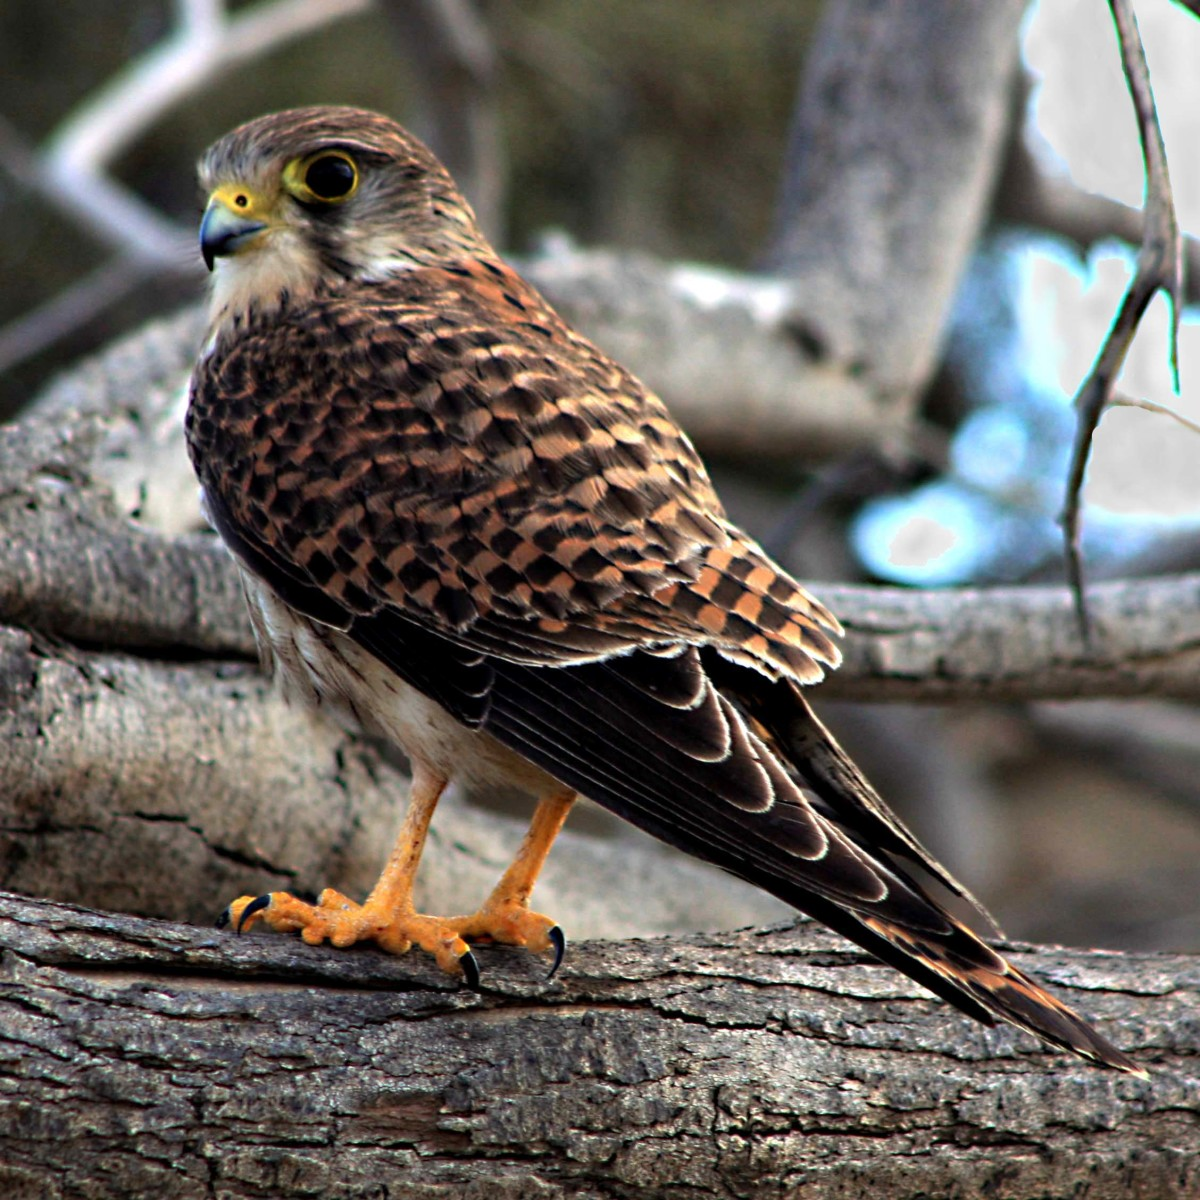 A female kestrel keeps a wary eye on the photographer, whilst hunting a small lizard